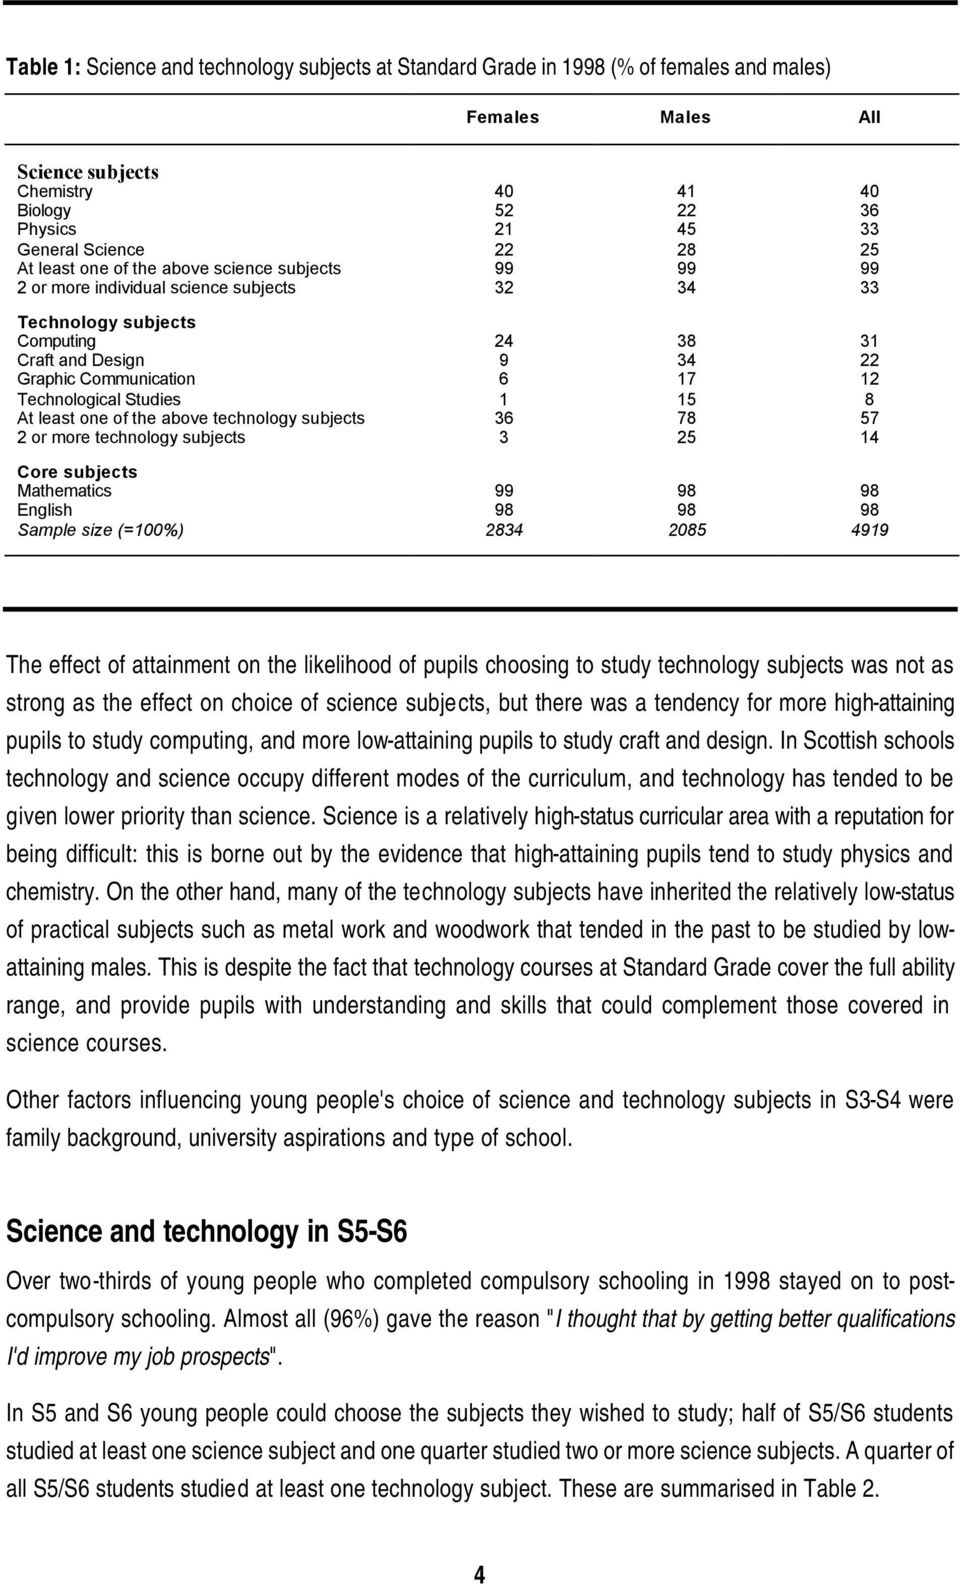 Technological Studies 1 15 8 At least one of the above technology subjects 36 78 57 2 or more technology subjects 3 25 14 Core subjects Mathematics 99 98 98 English 98 98 98 Sample size (=100%) 2834